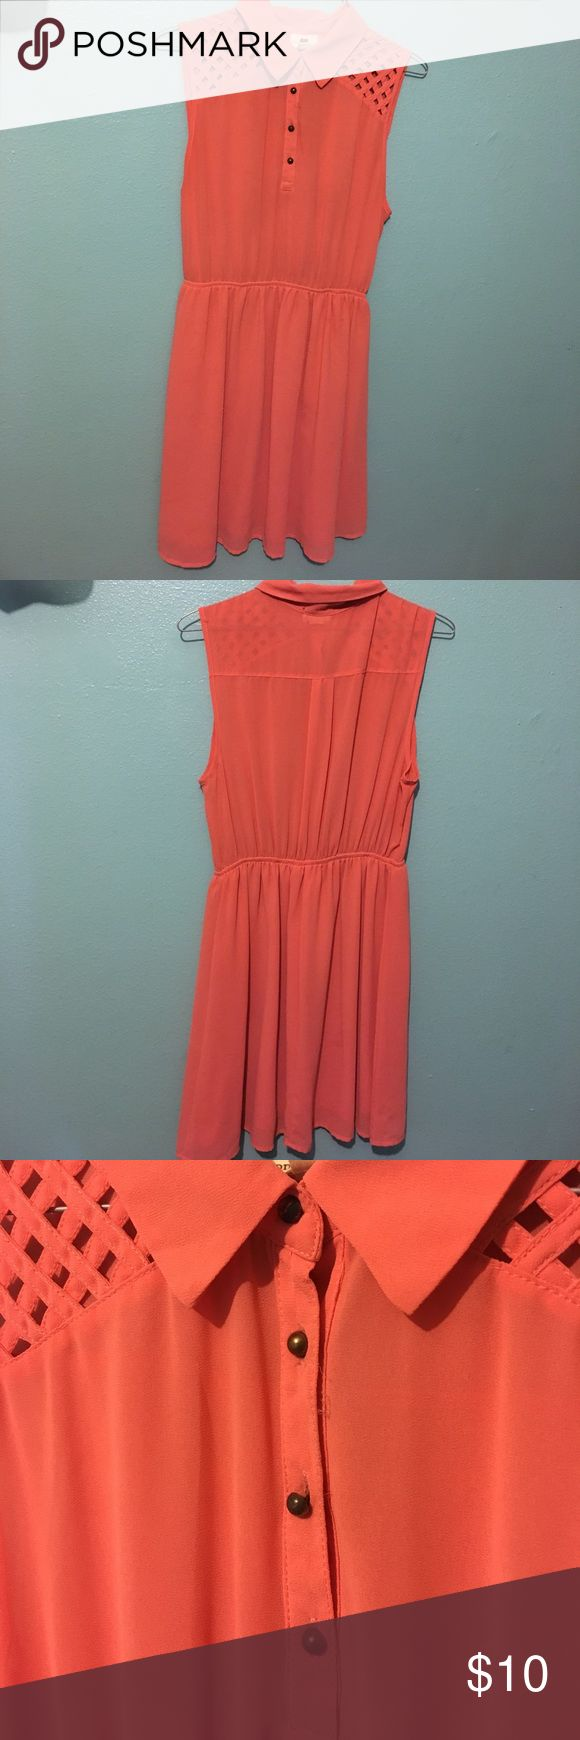 Salmon Color Collar Dress, Size M/L I wear it as a baggy M, in good condition one clothing Dresses